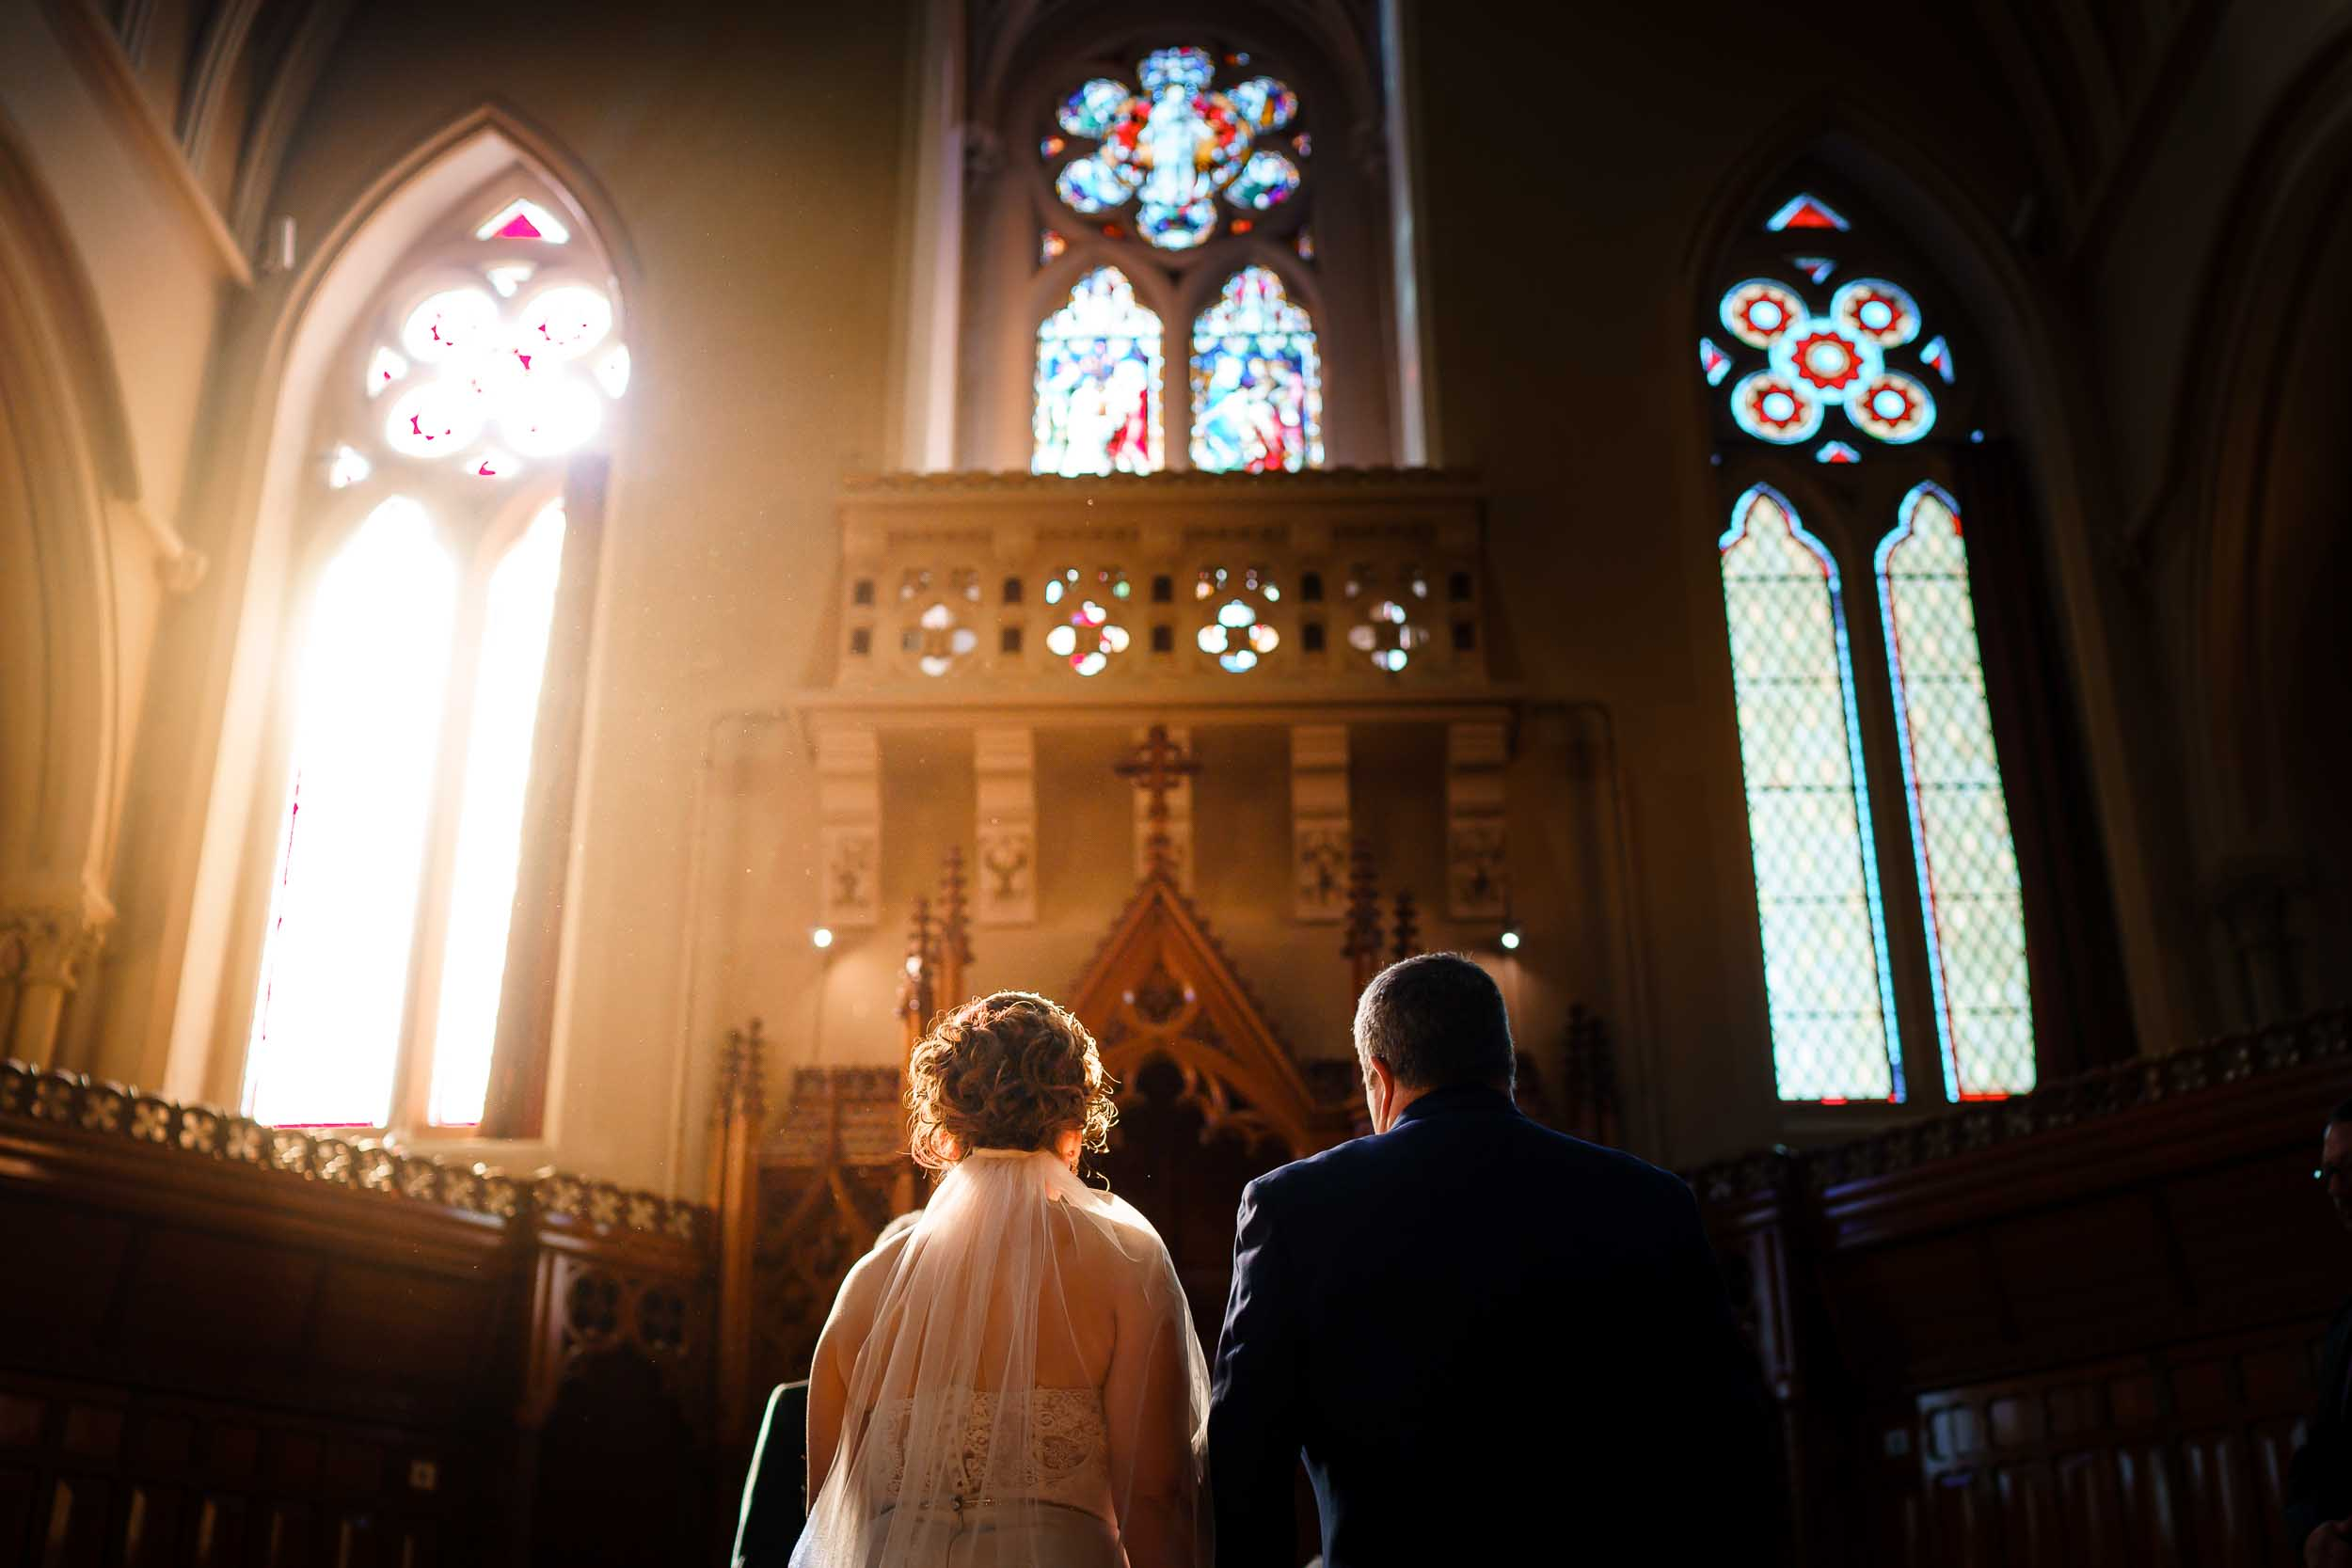 Stanbrook Abbey Wedding Ceremony - David Liebst Photography, Worcestershire